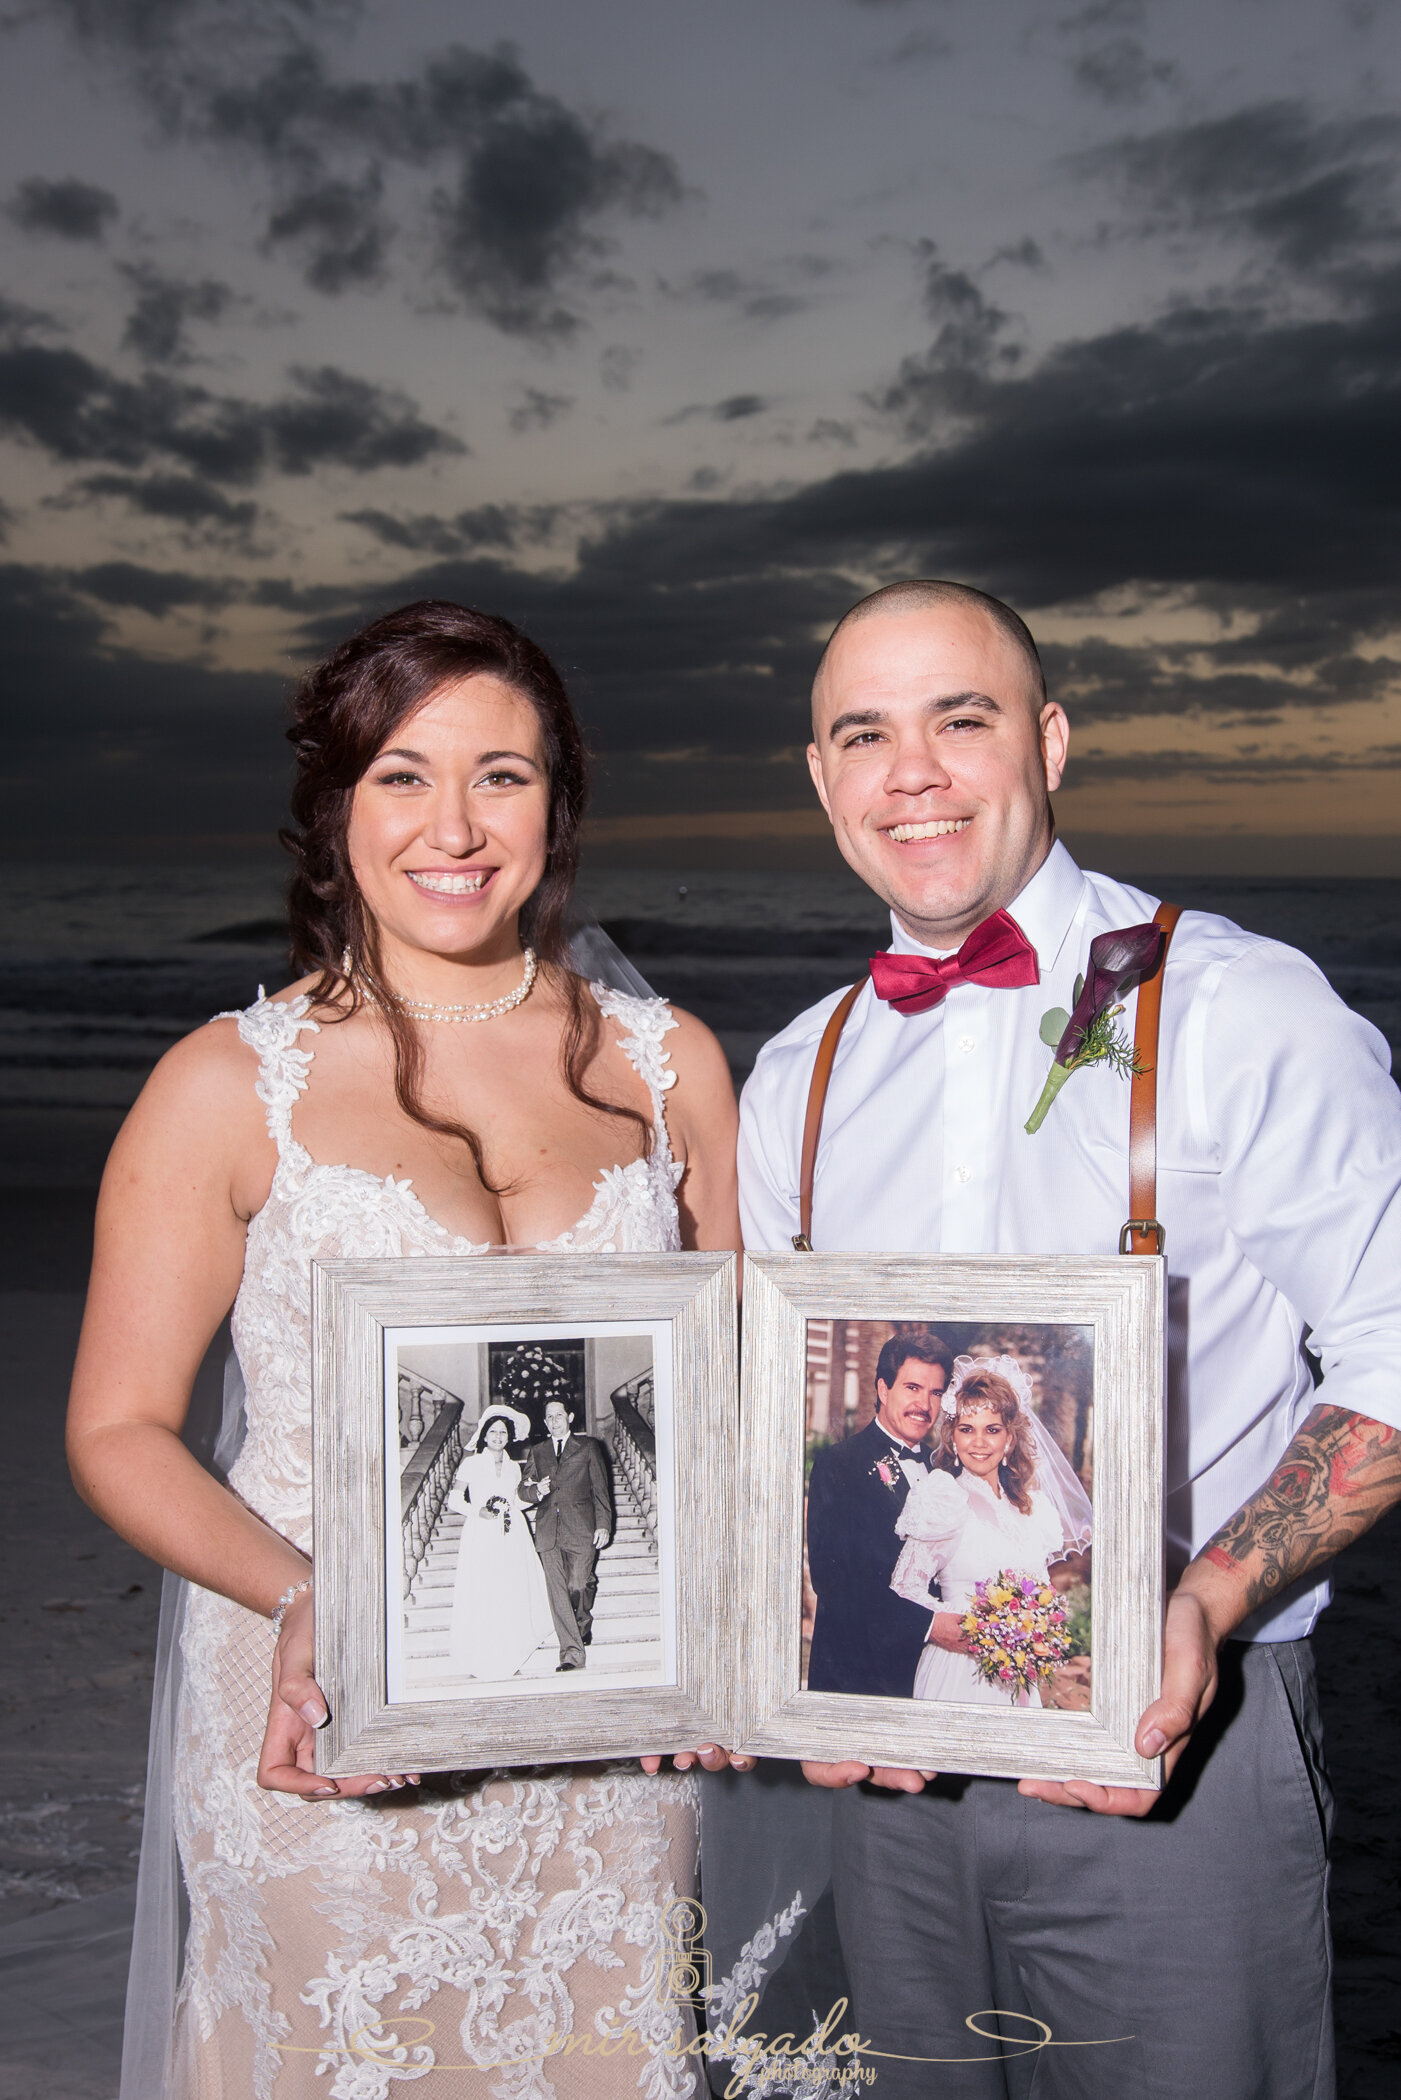 Beatriz and Leo wanted to capture a personal touch, where they were holding their parent's wedding pictures.